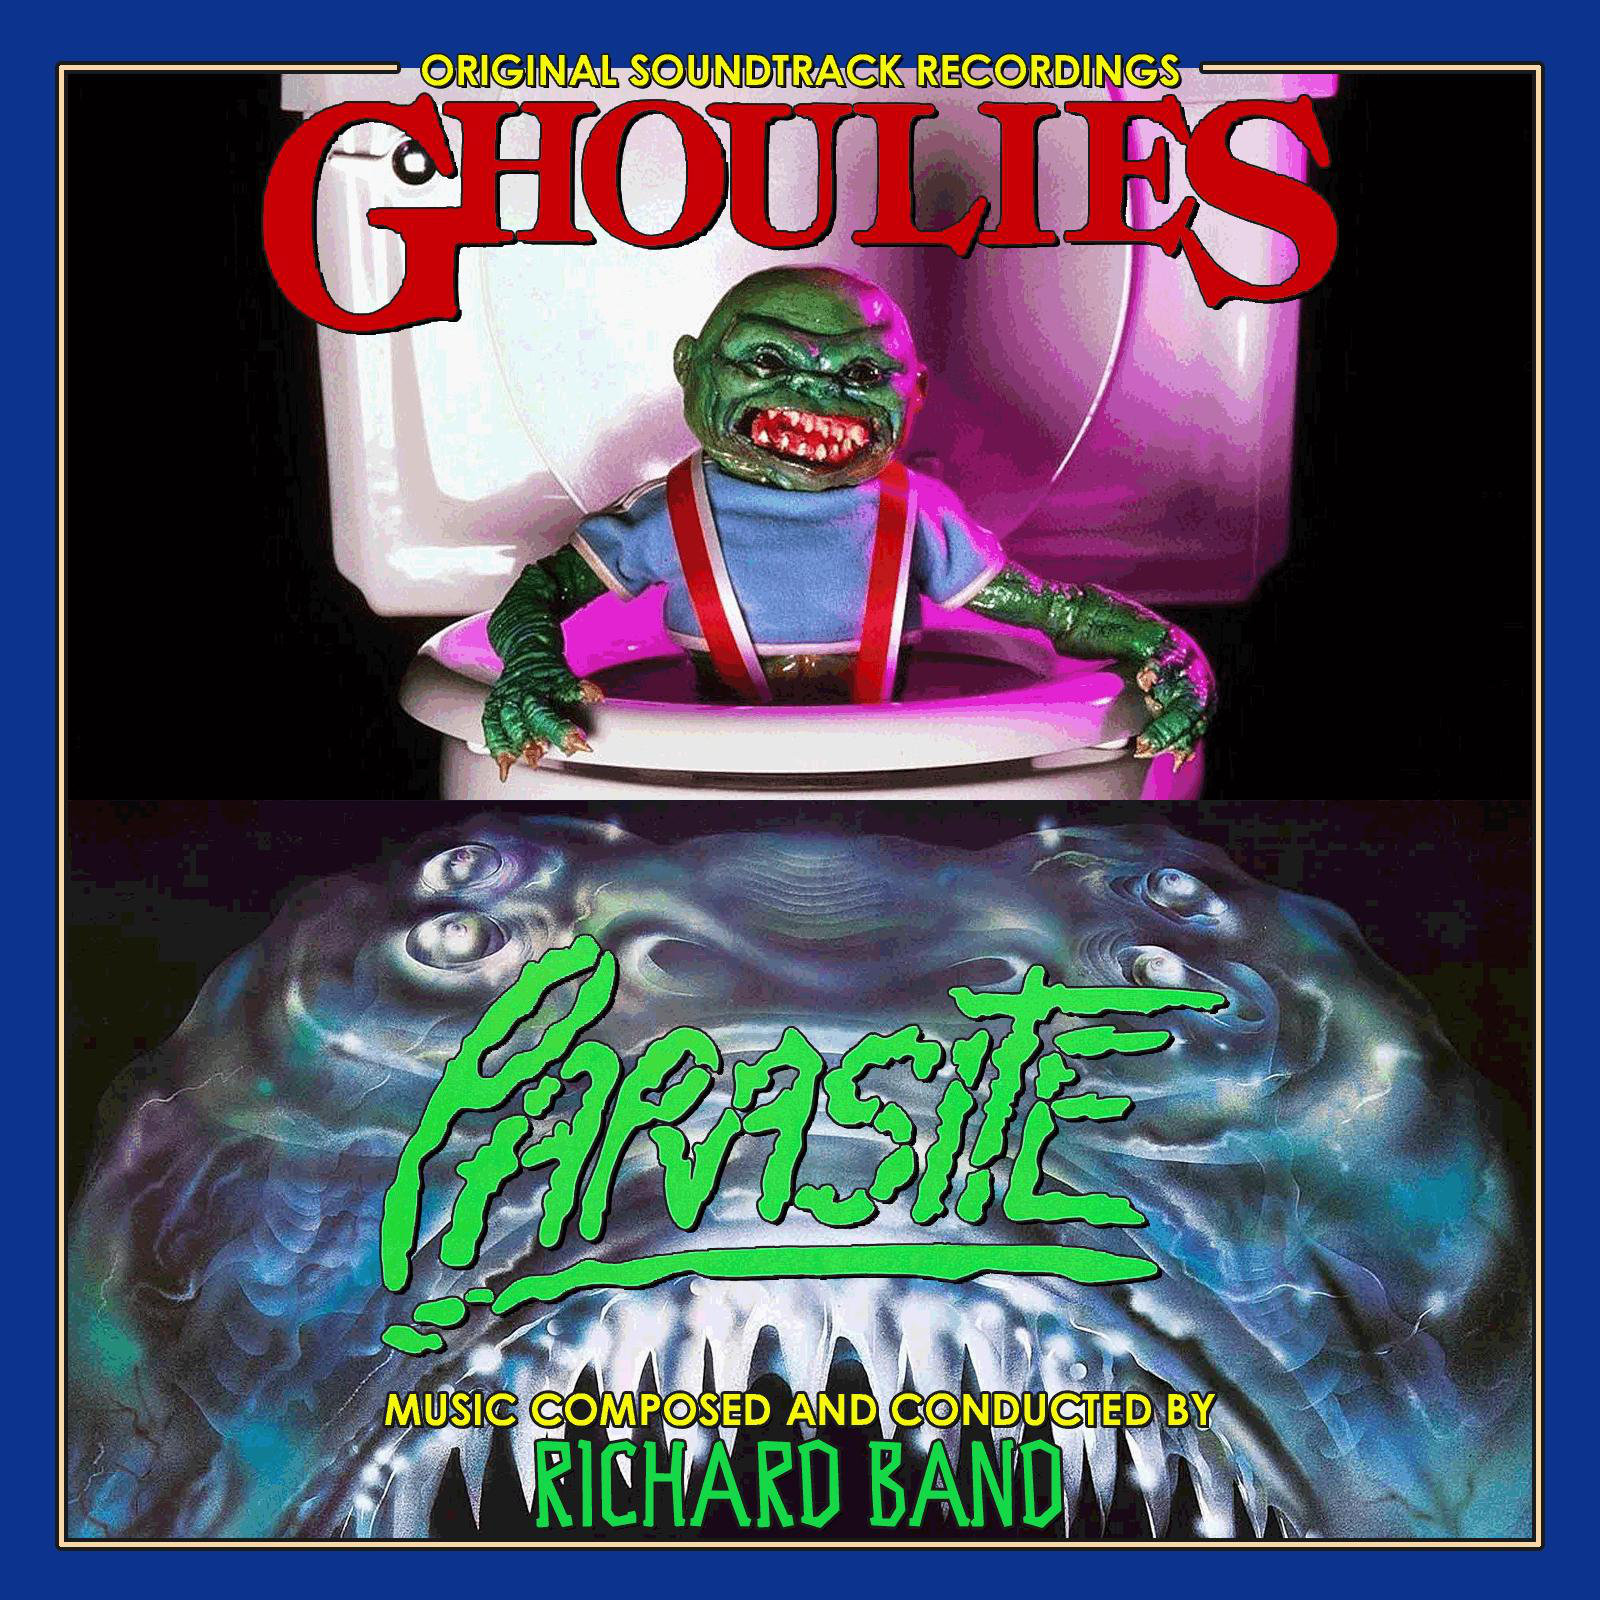 Richard Band - Ghoulies - Re-Animator